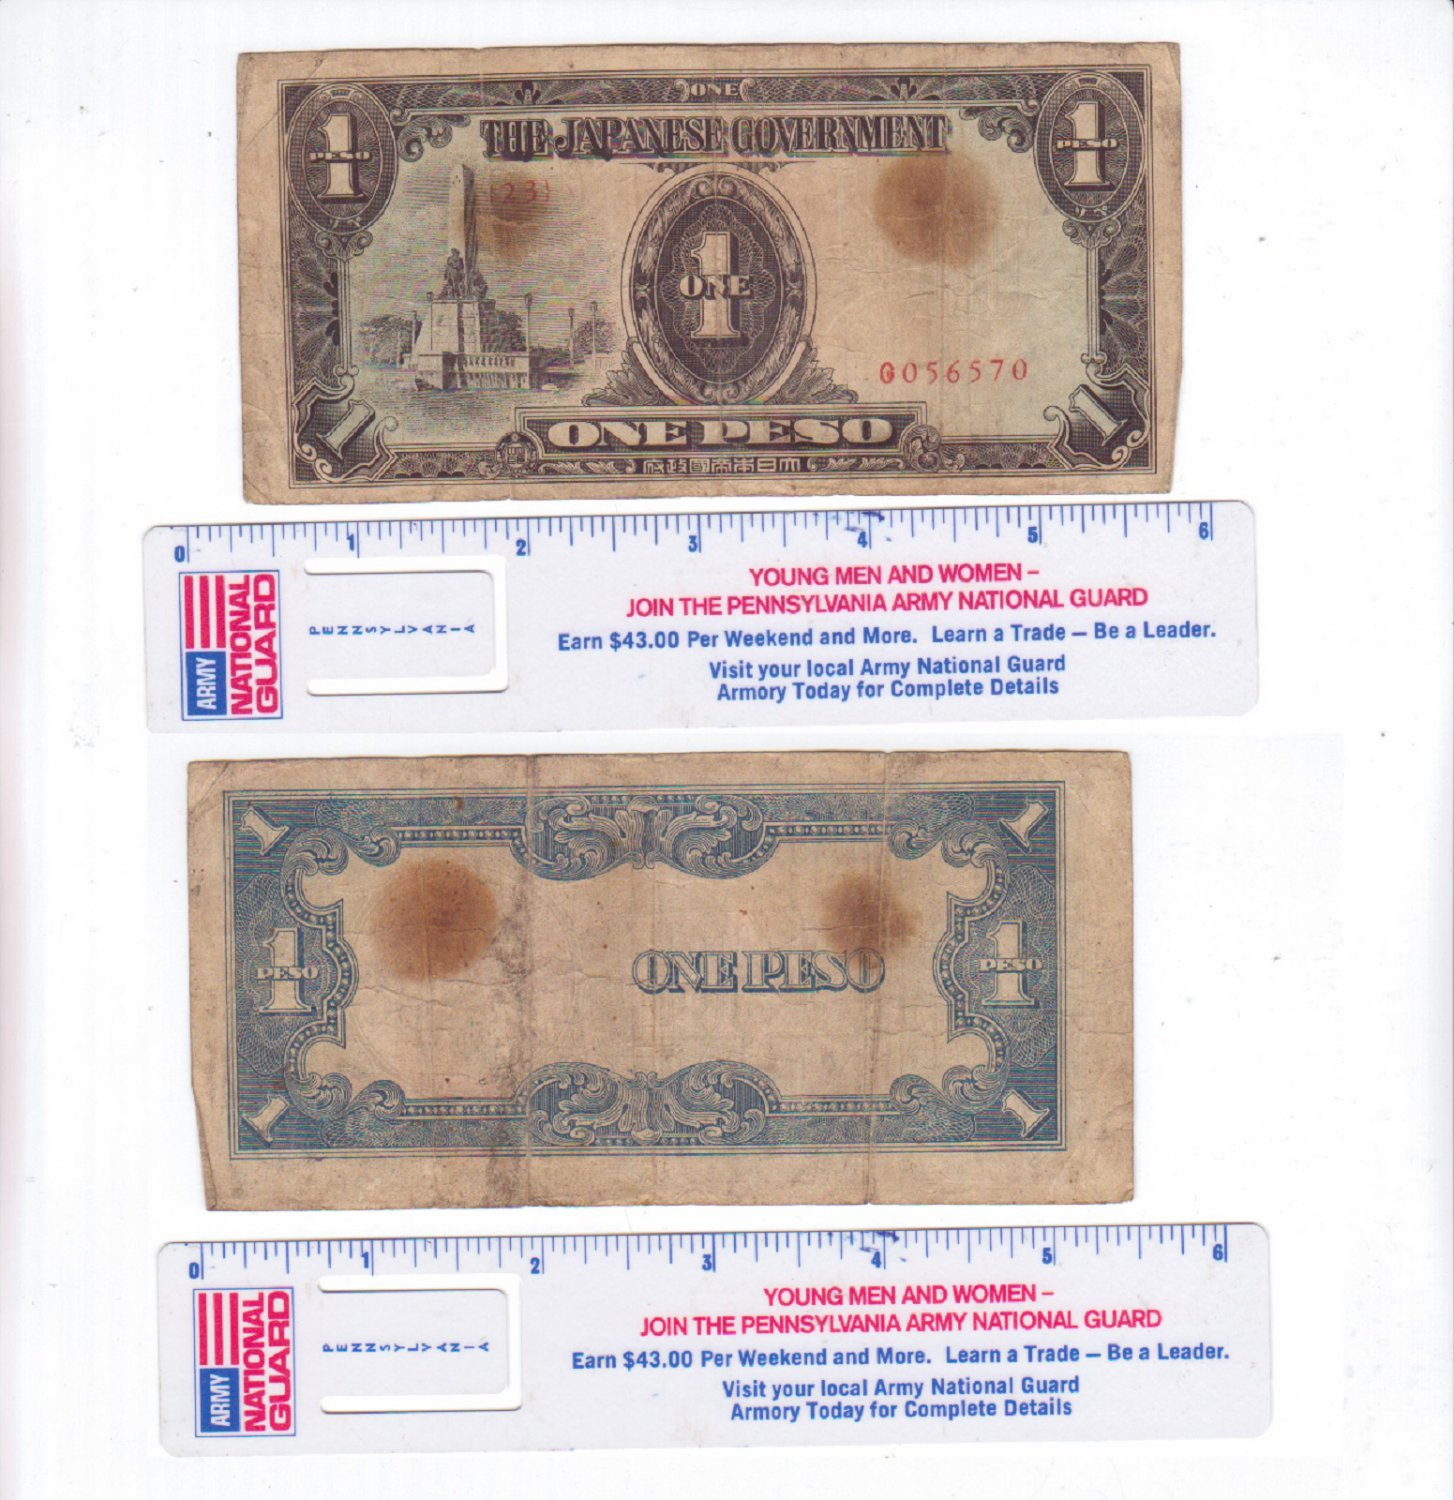 The Japanese Government WW2 One Peso Occupation Notes